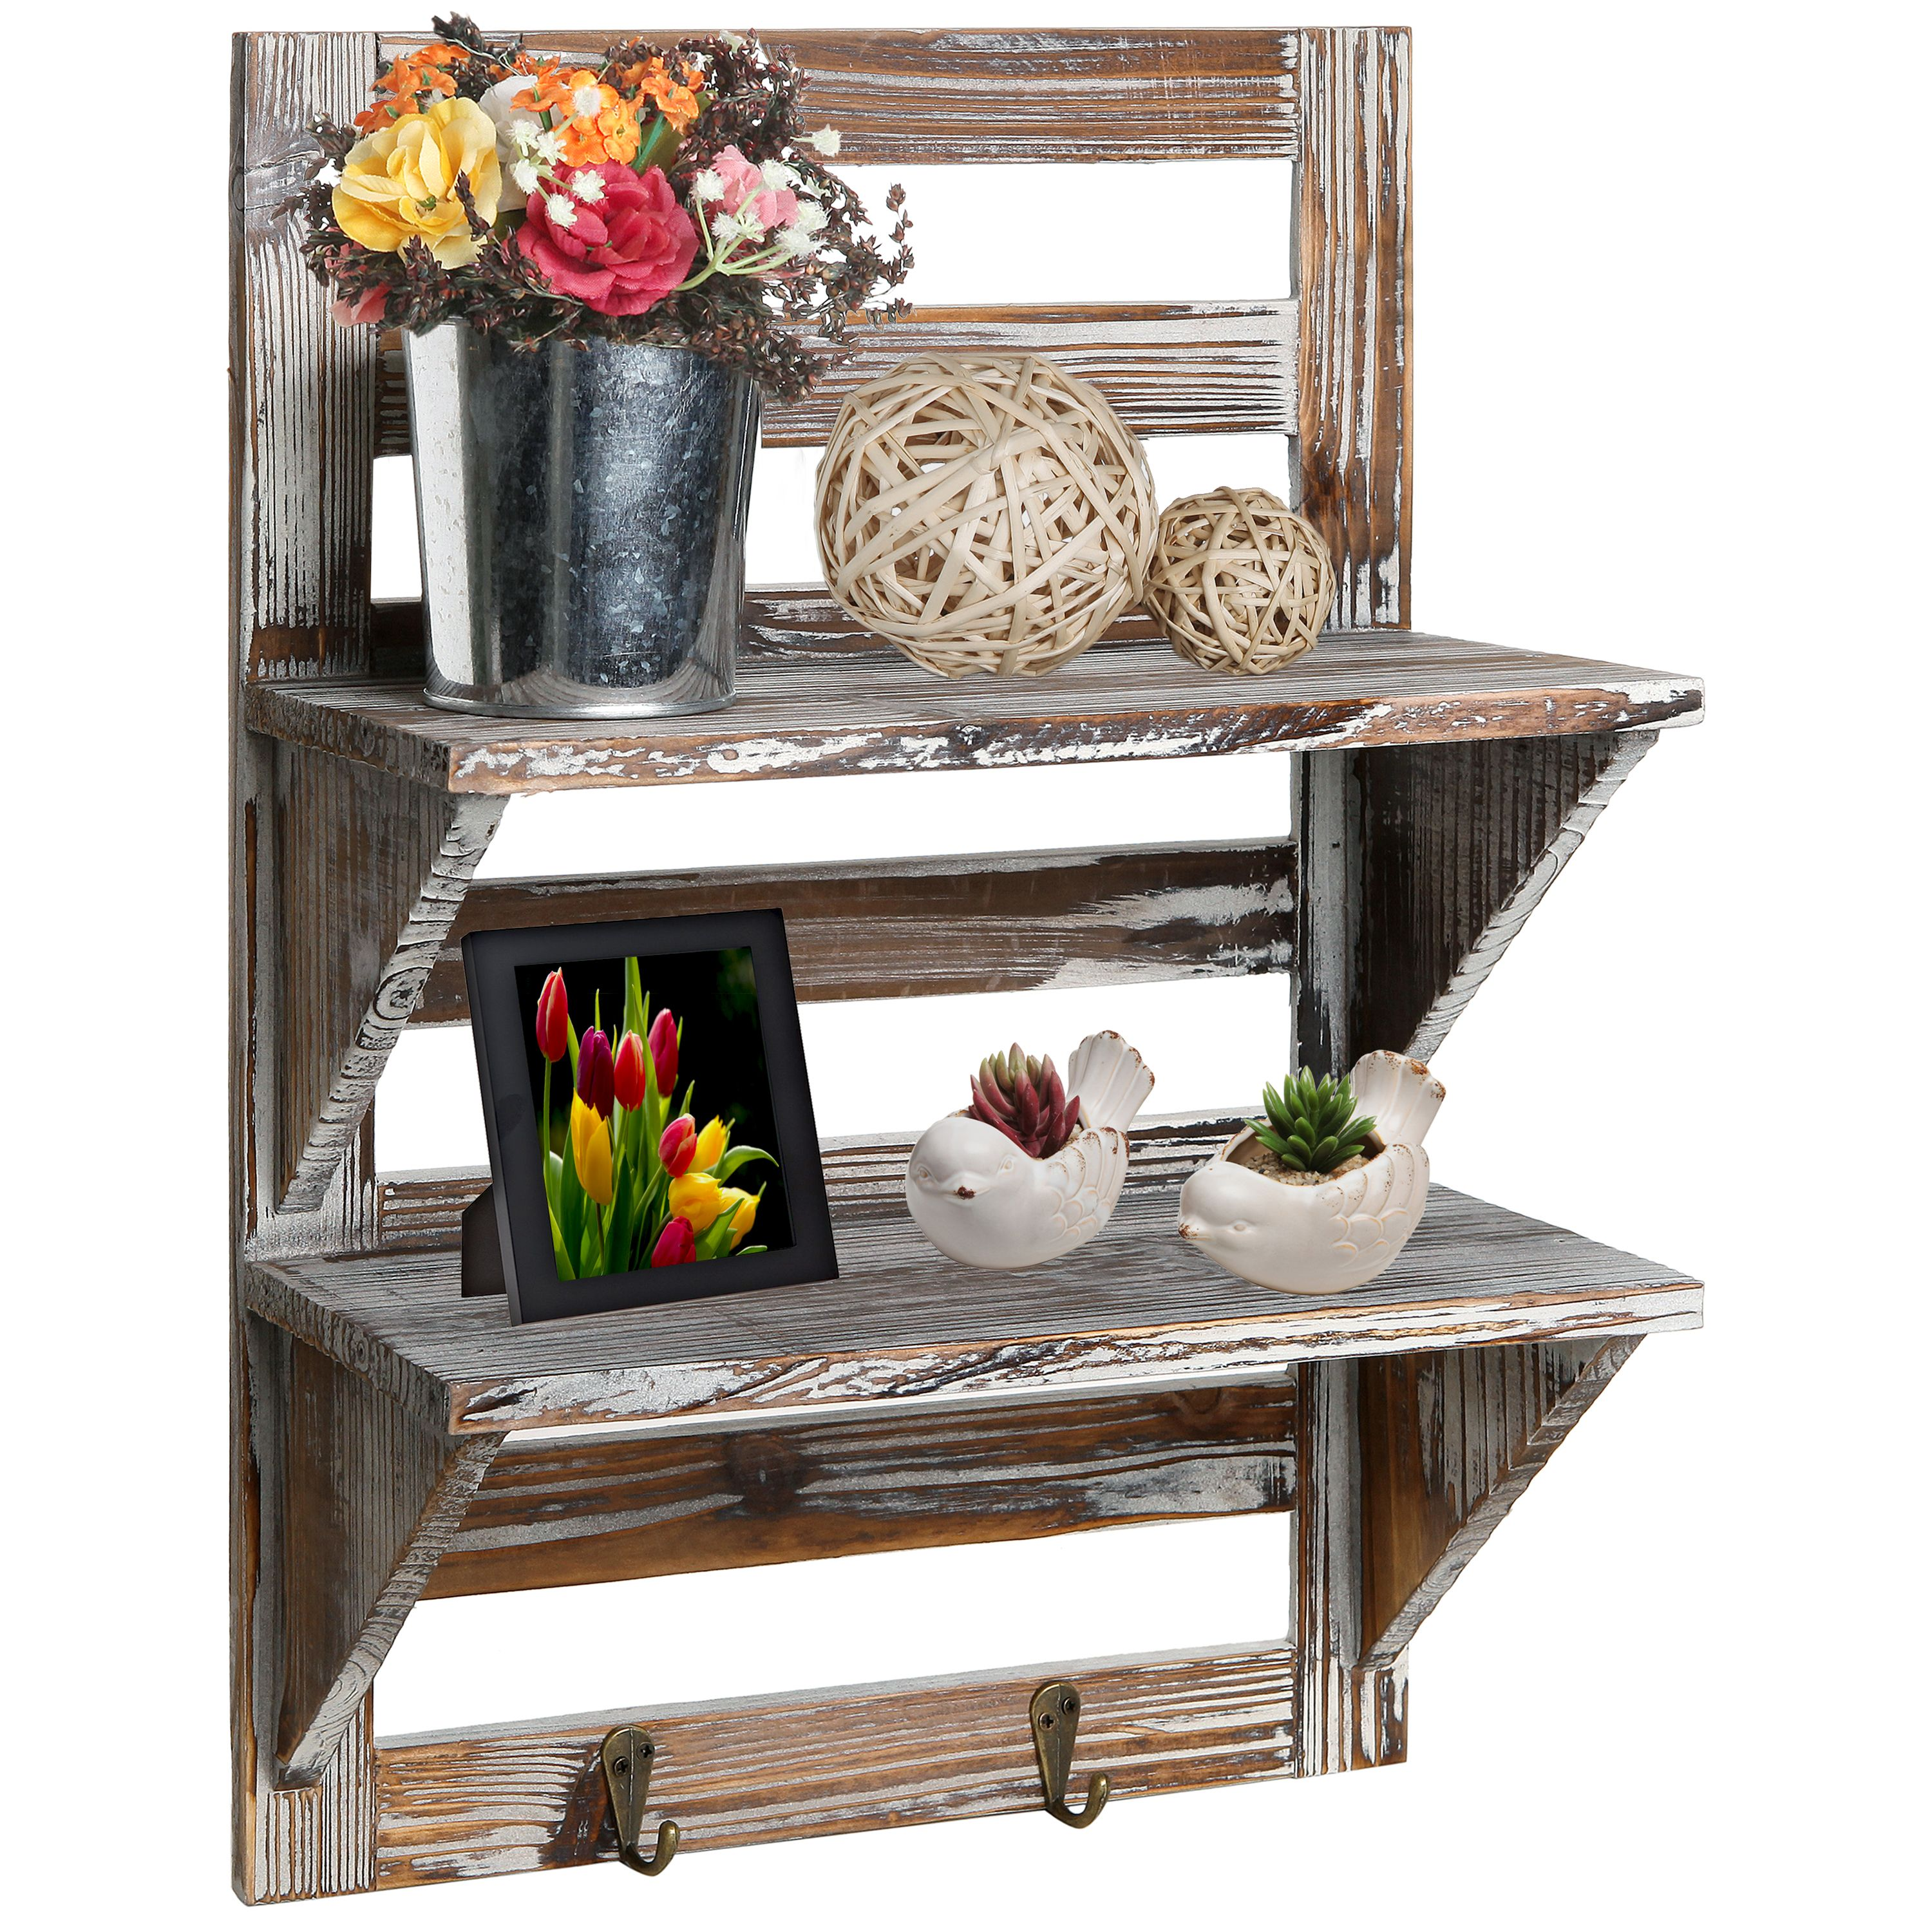 2-Tier Rustic Wood Wall Mounted Organizer Shelves w/ 2 Key Hooks